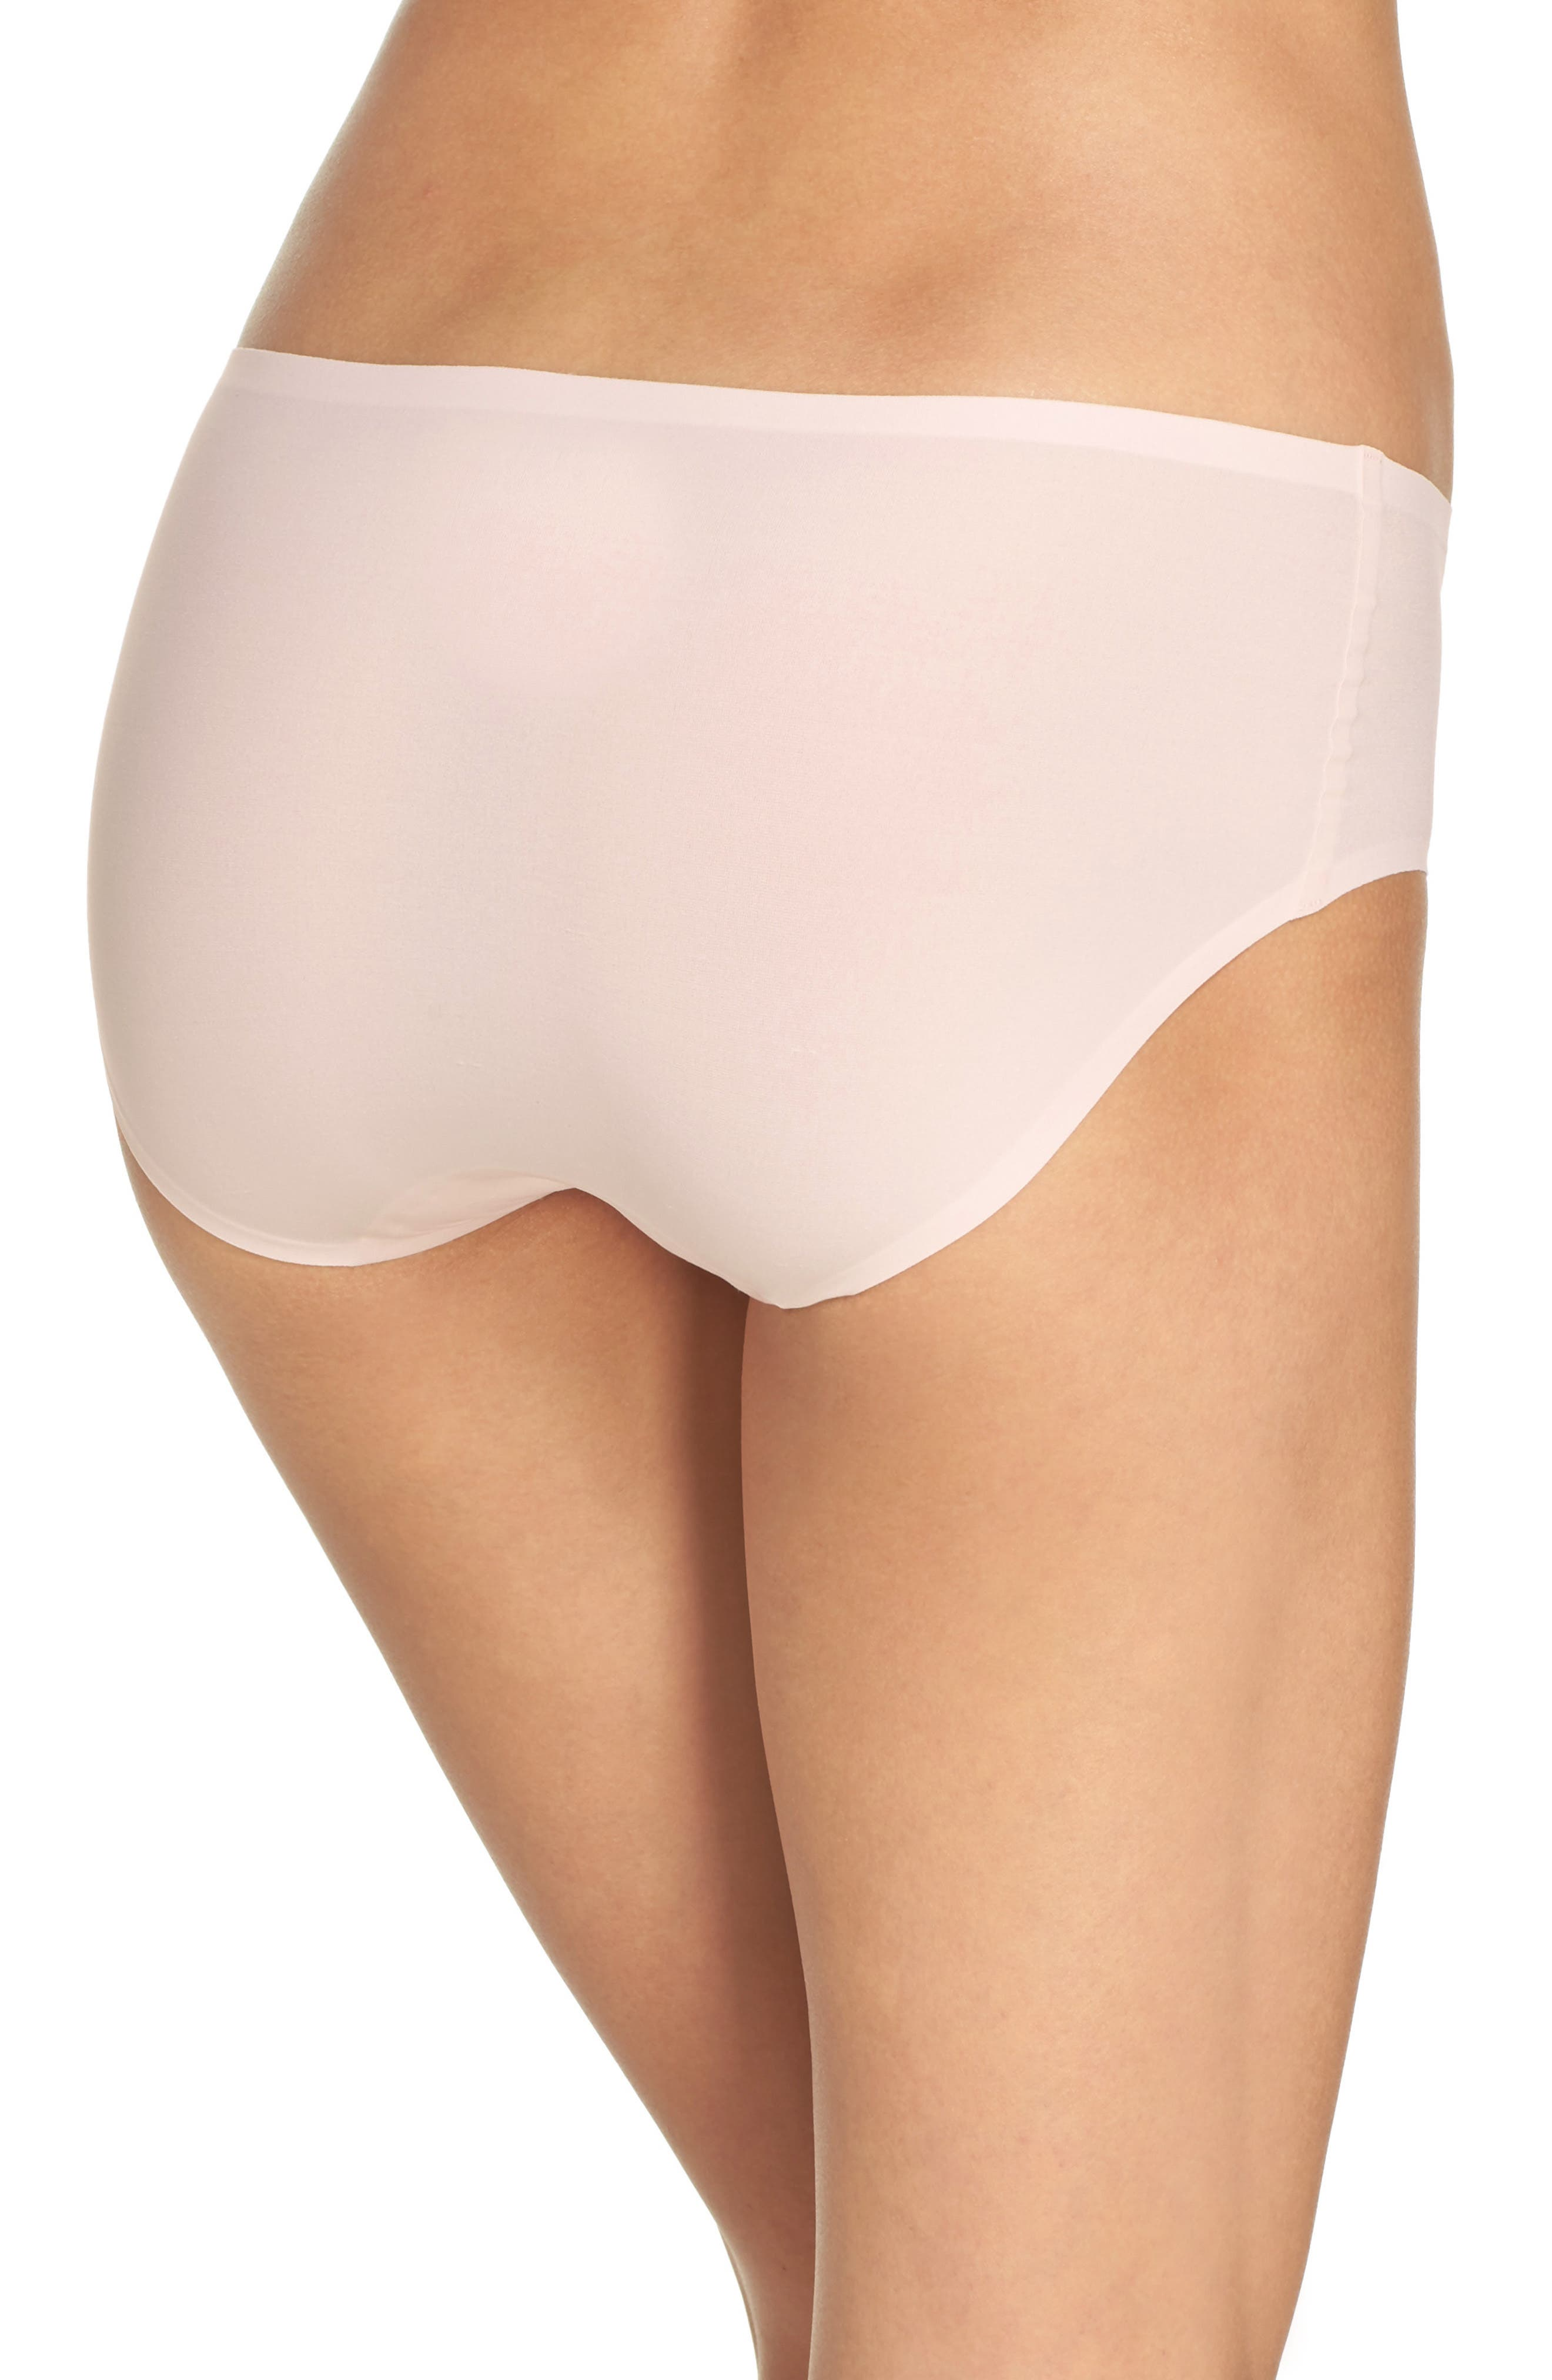 Alternate Image 2  - Chantelle Intimates Soft Stretch Seamless Hipster Panties (3 for $45)